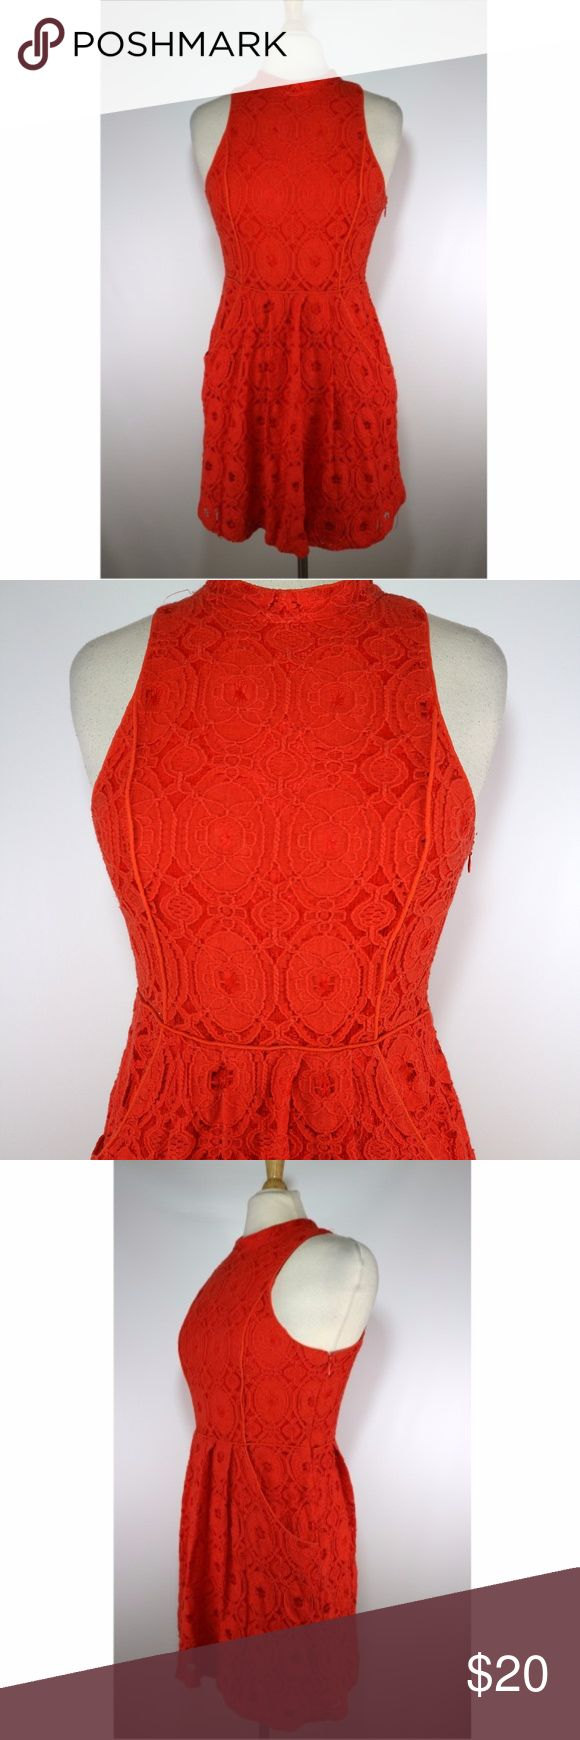 """Kimchi Blue High Neck Lacy Dress Red Orange Kimchi blue women's lacy floral dress. Size 8. Zips up the side and it also has pockets. Gently used. Clean.   17"""" armpit to armpit  14"""" across at waist 32"""" long (shoulder to bottom) Kimchi Blue Dresses"""